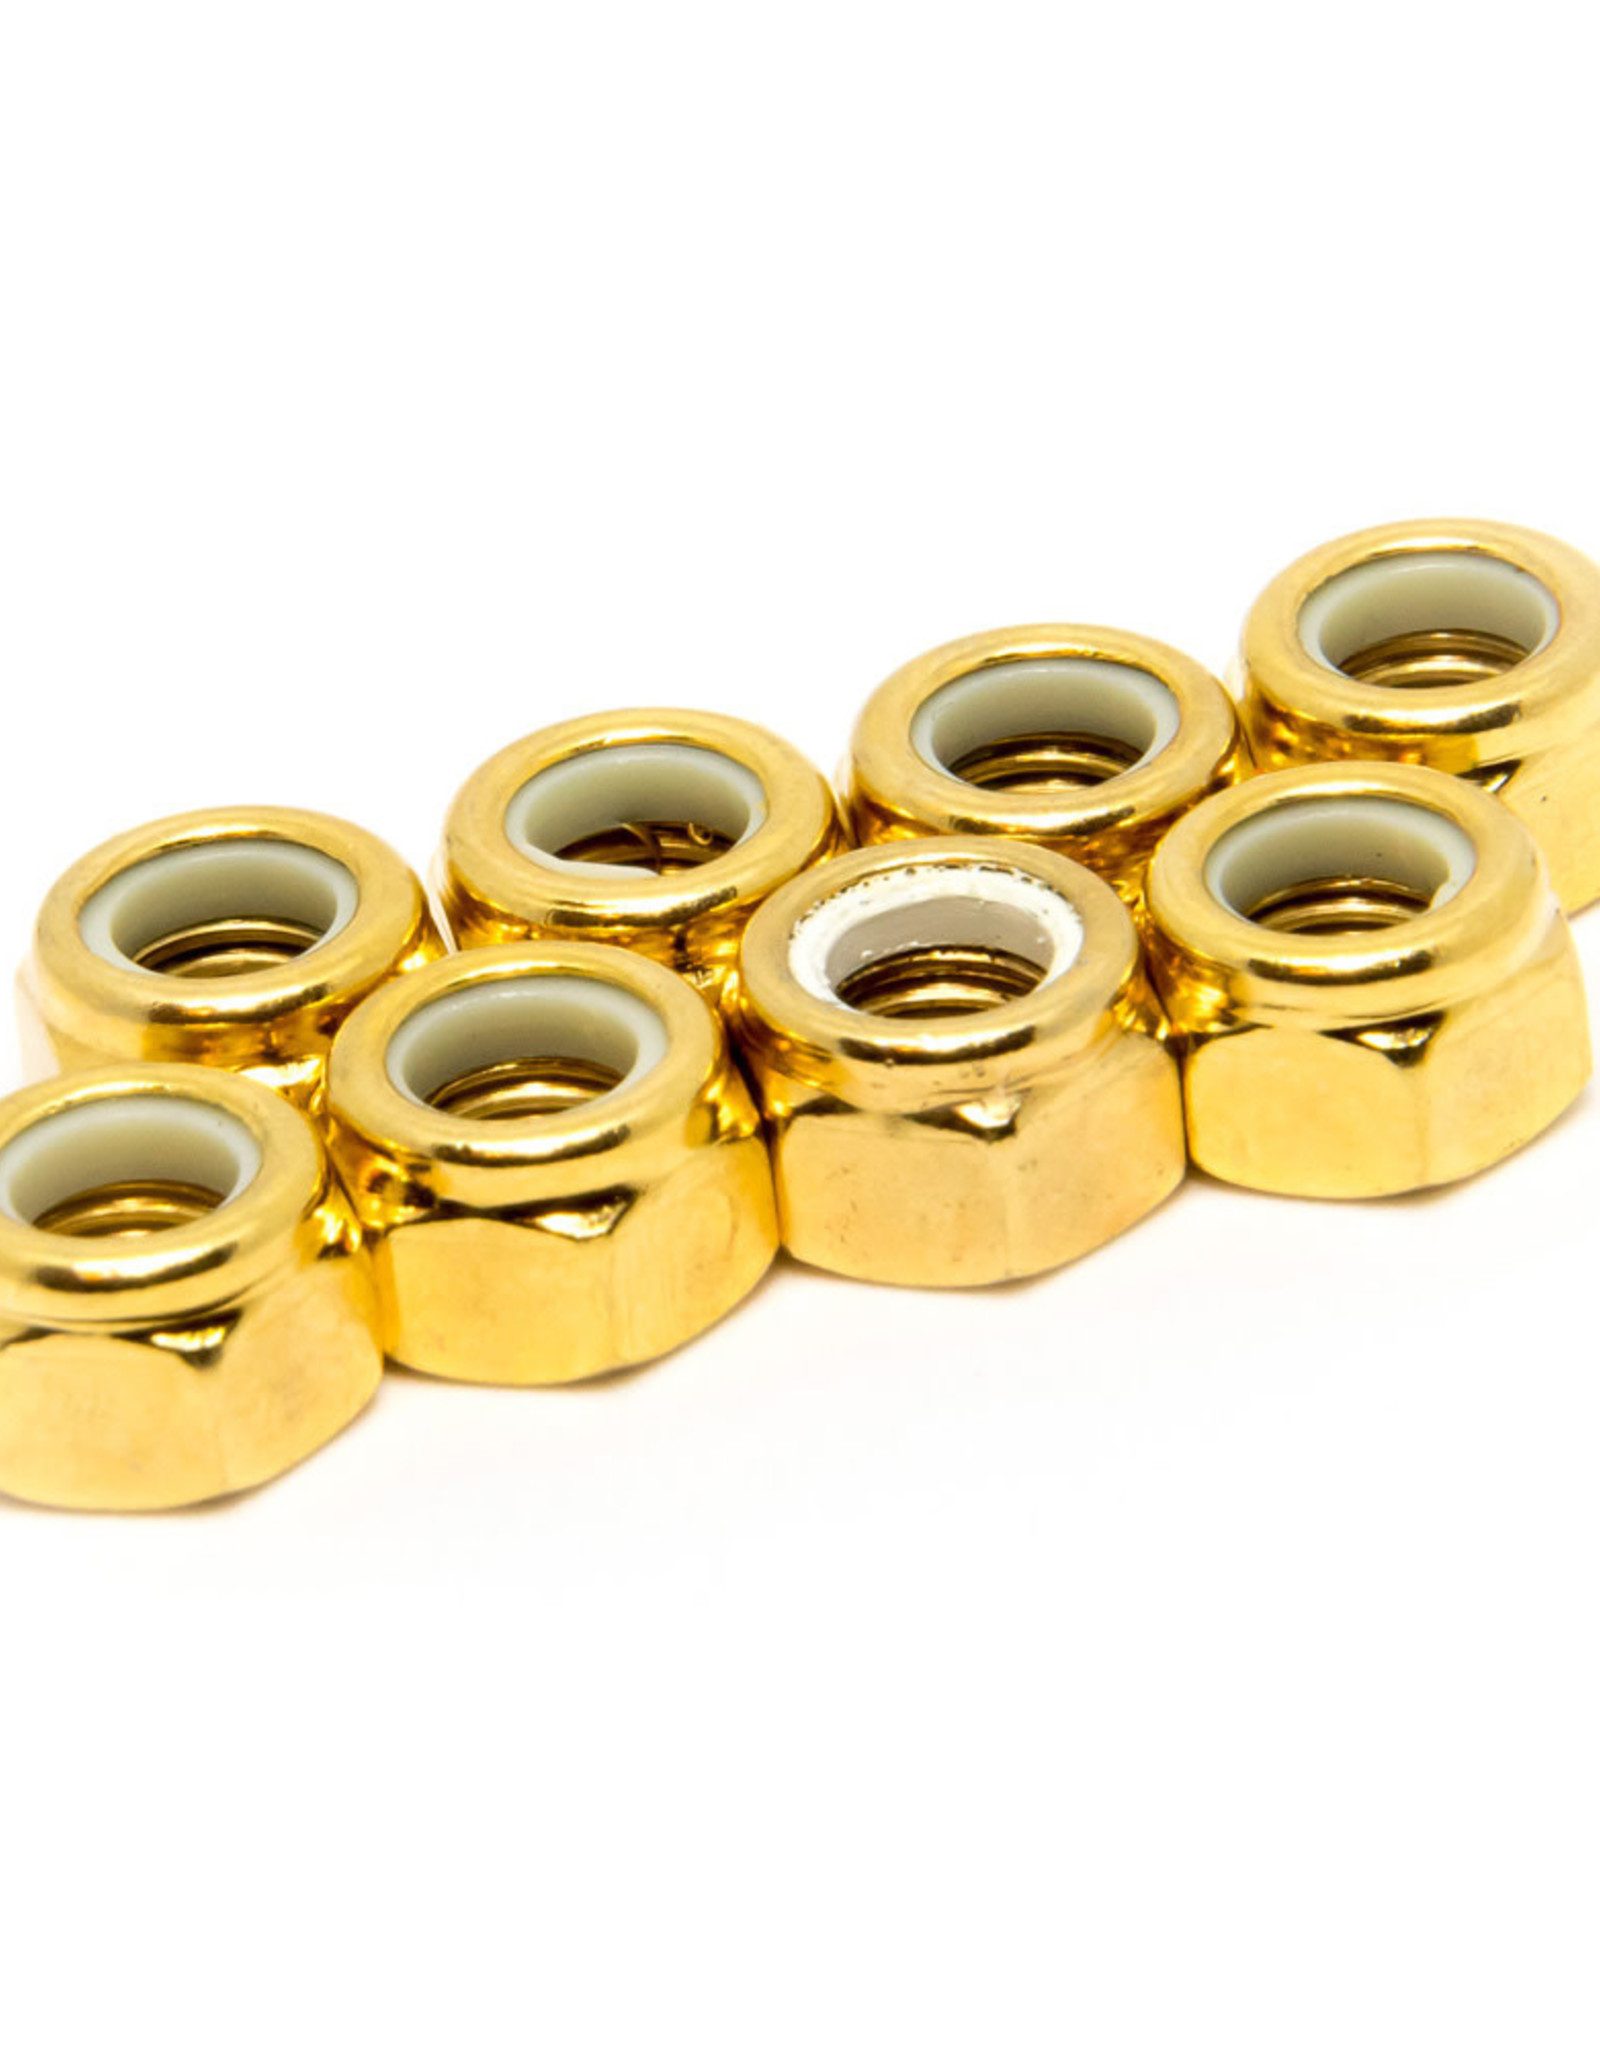 Roll Line Roll Line GOLD Axle Nuts (set of 8)